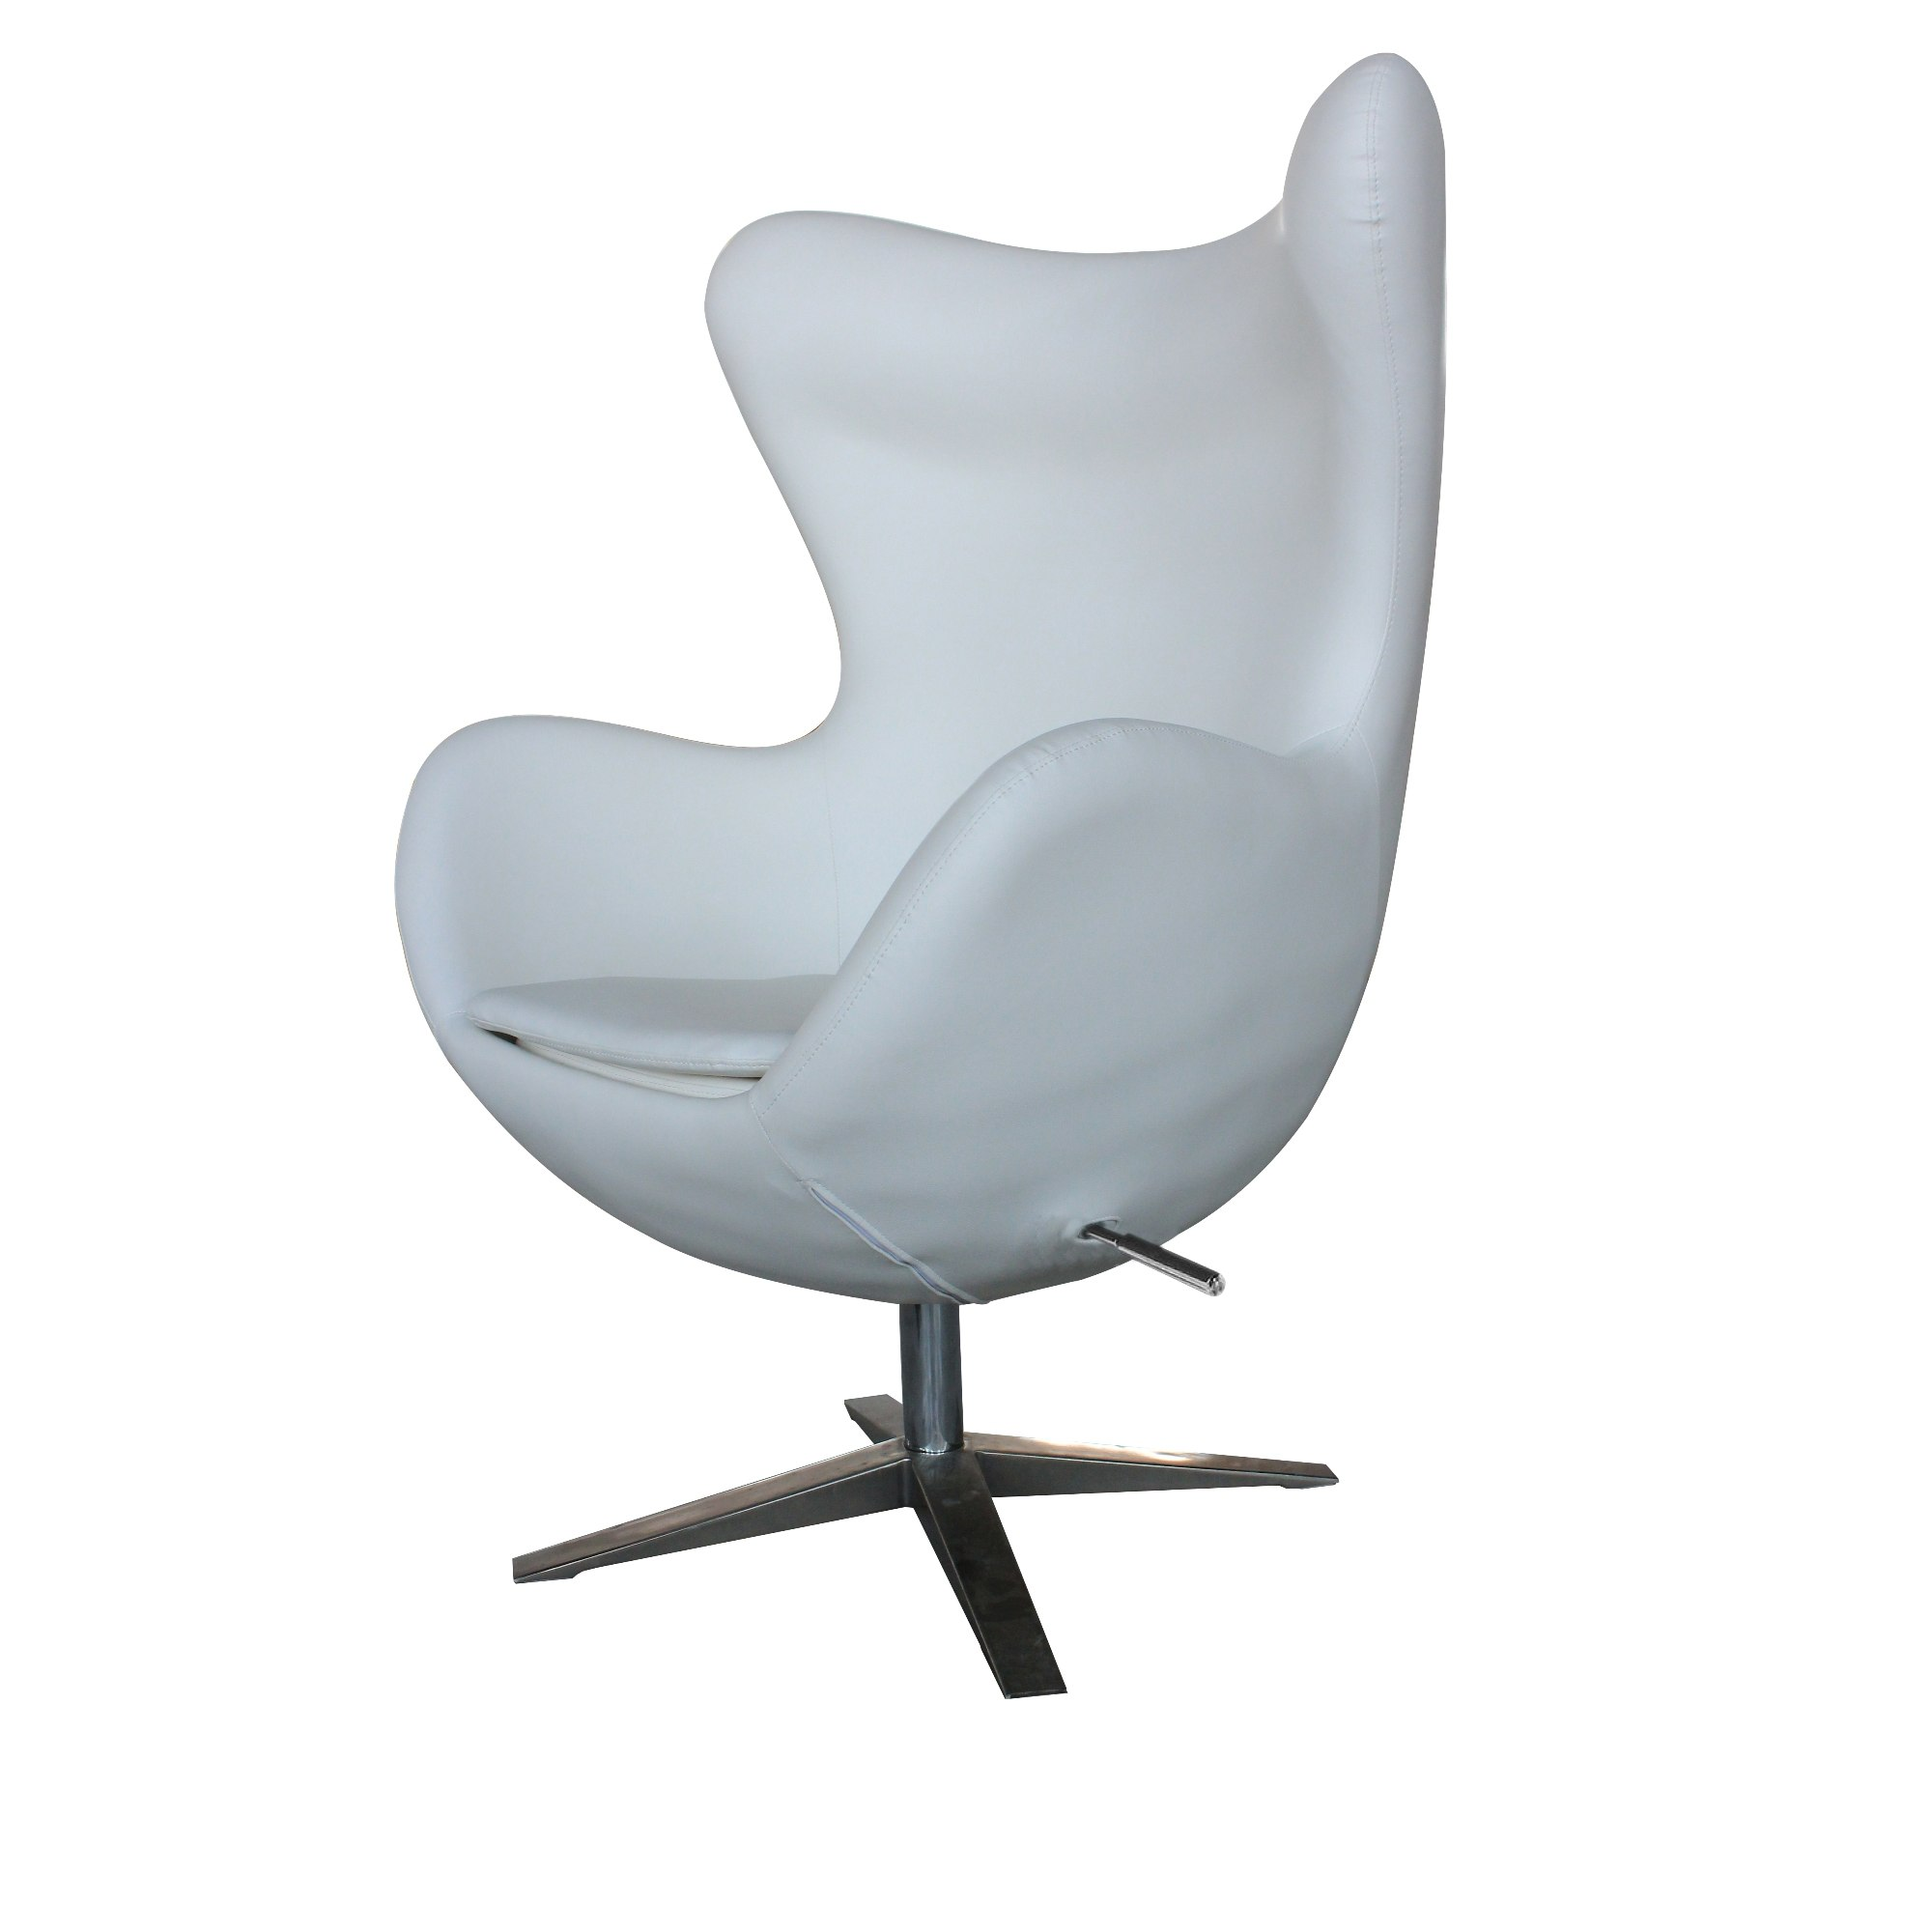 The Cool White Egg Chair In Faux Leather Goes Great With The Chrome Swivel  Base And